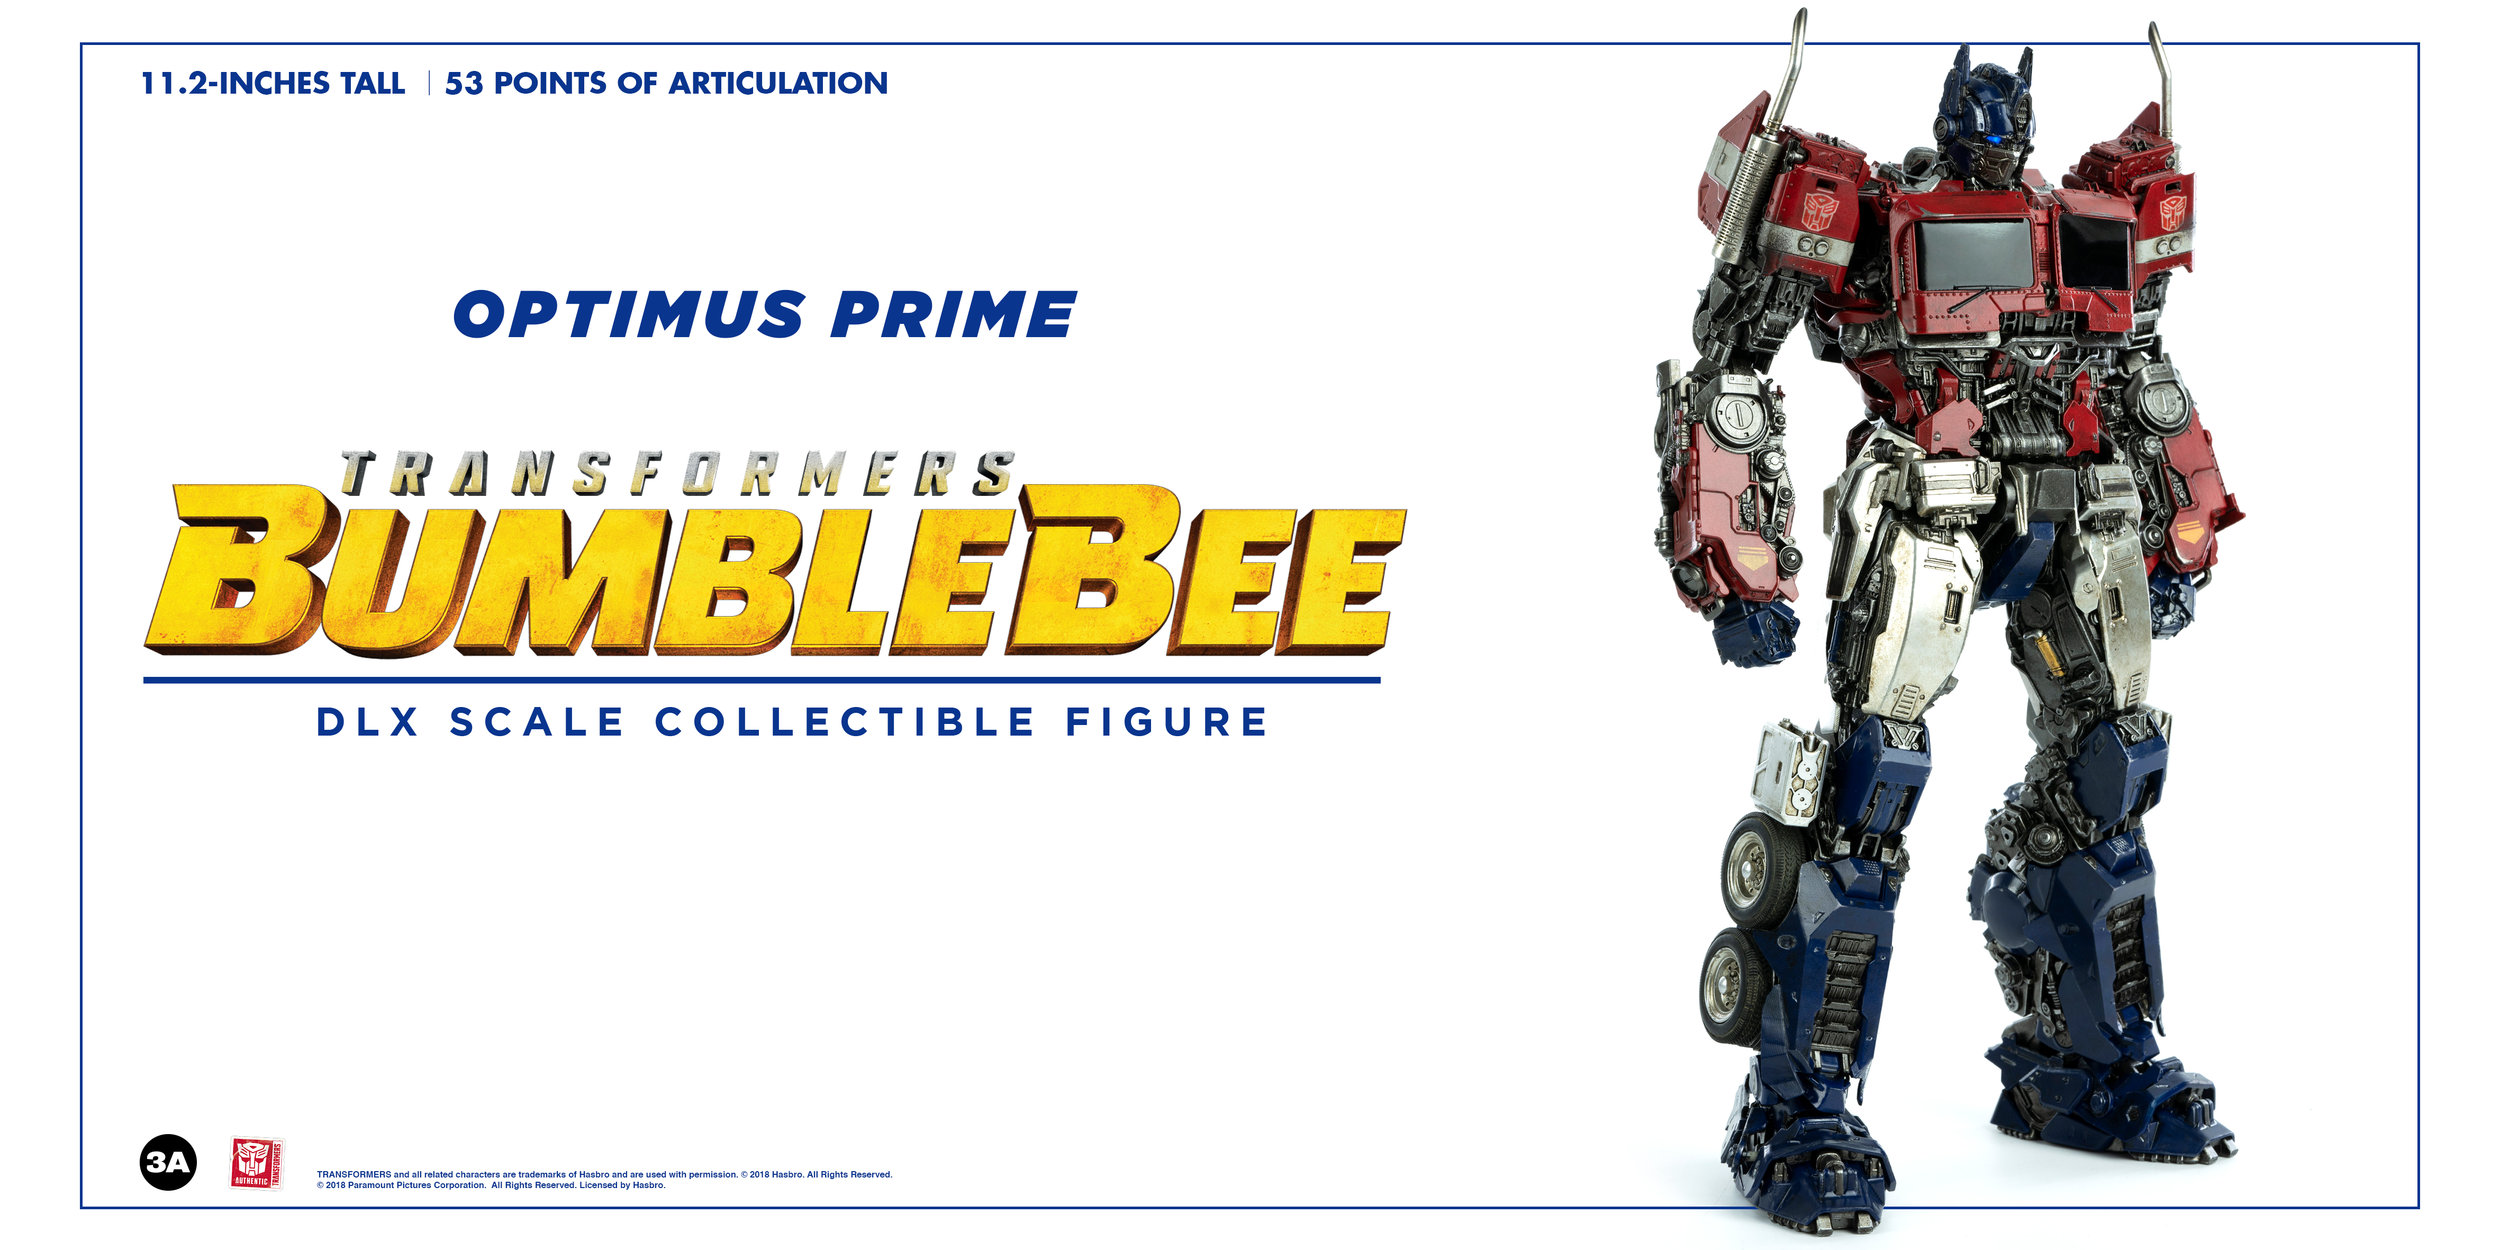 Transformers Bumblebee DLX and Premium Scale Collectible Figures  - Page 2 OP_DLX_ENG_5908_wide